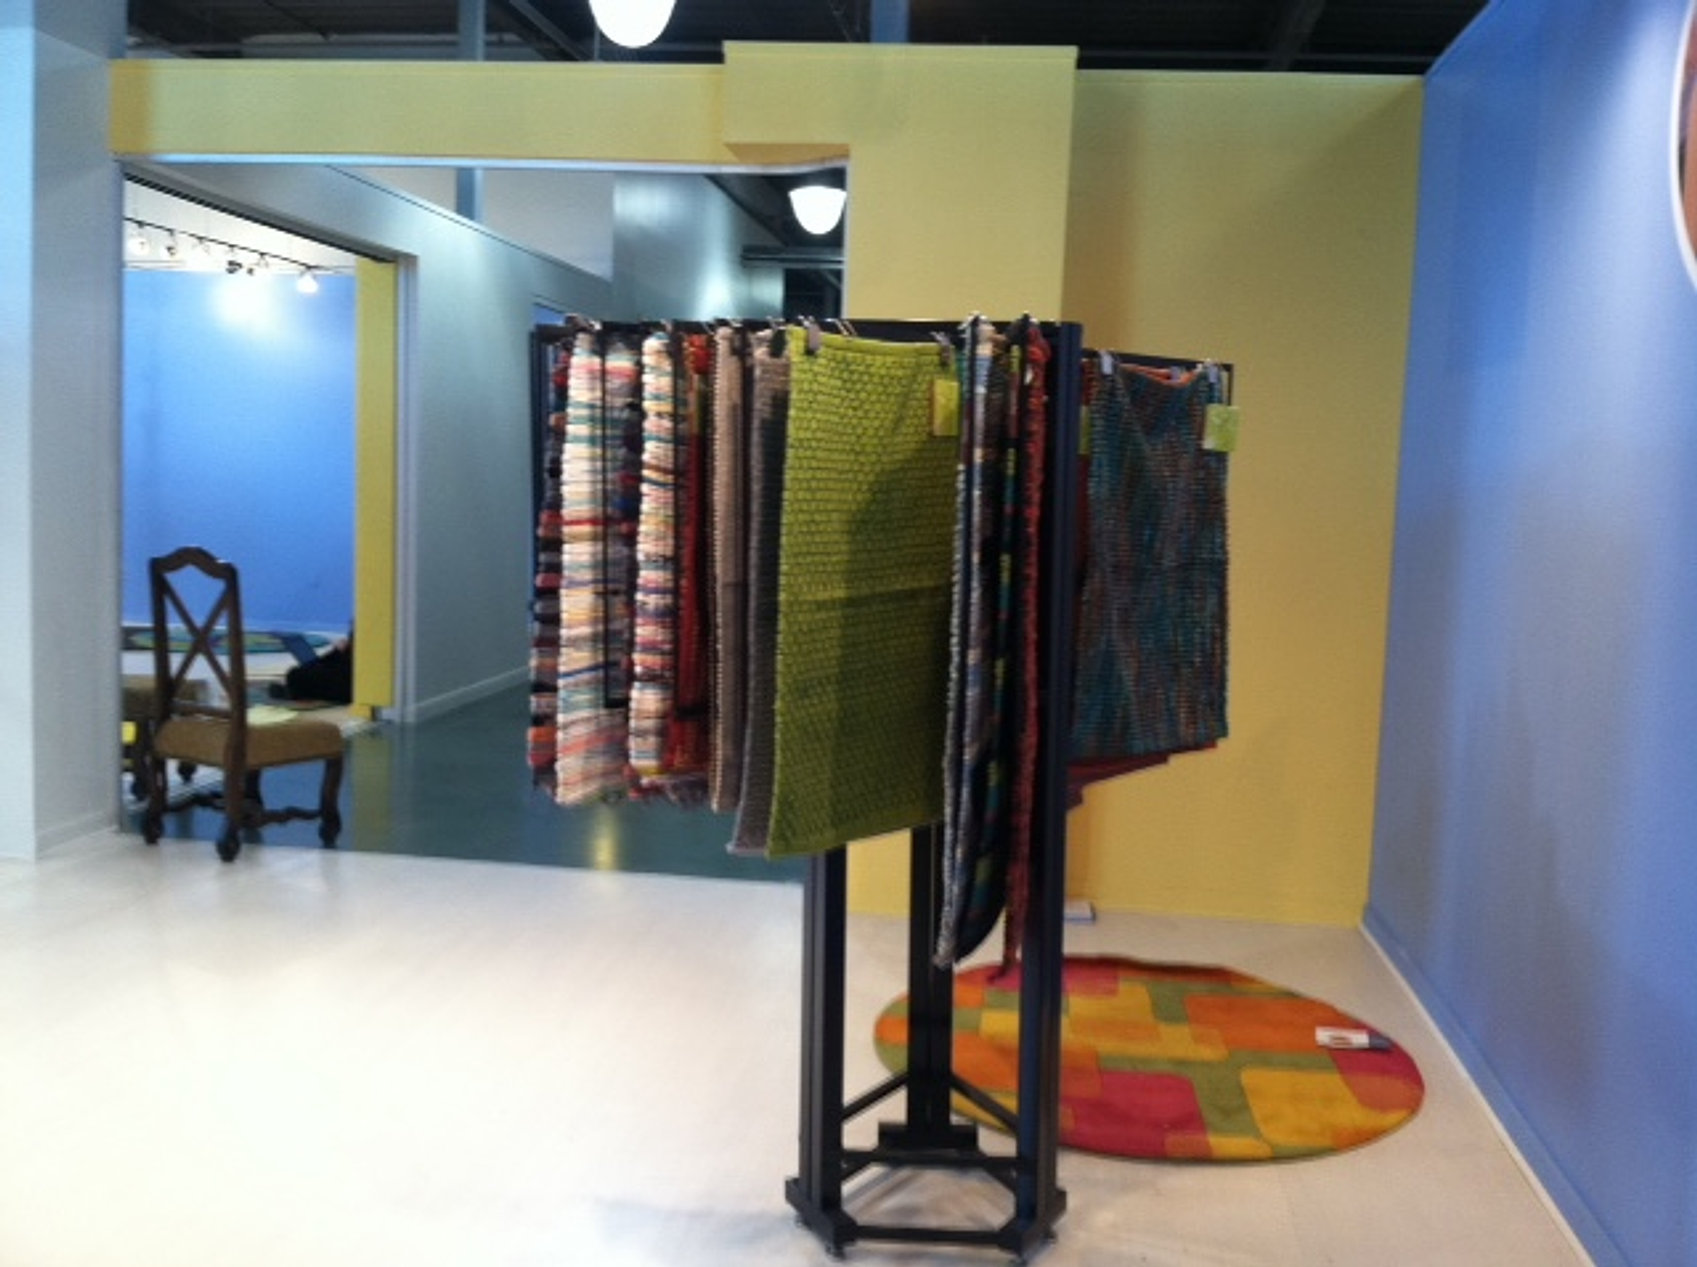 global textile designs, the